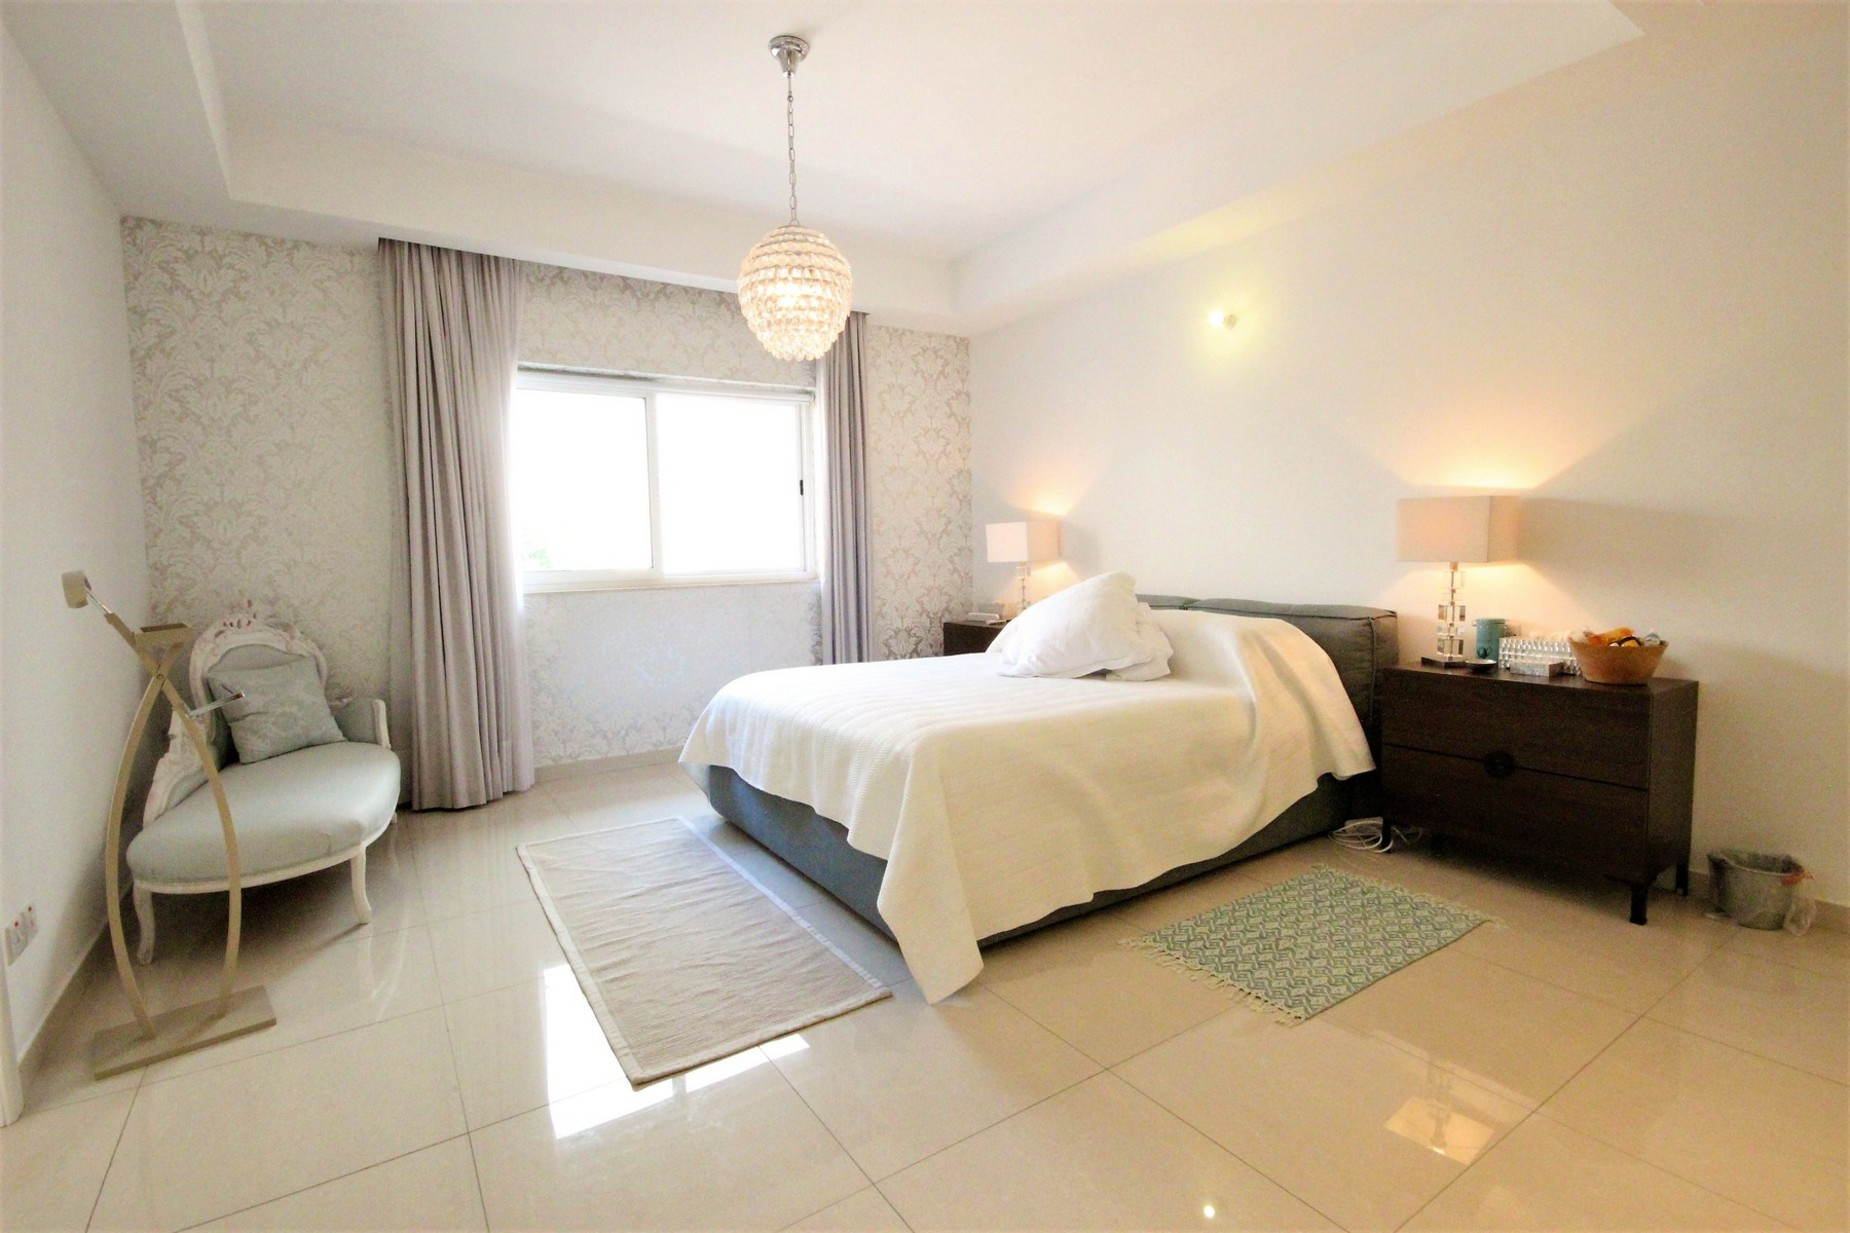 3 bed Apartment For Rent in St Julian's, St Julian's - thumb 14